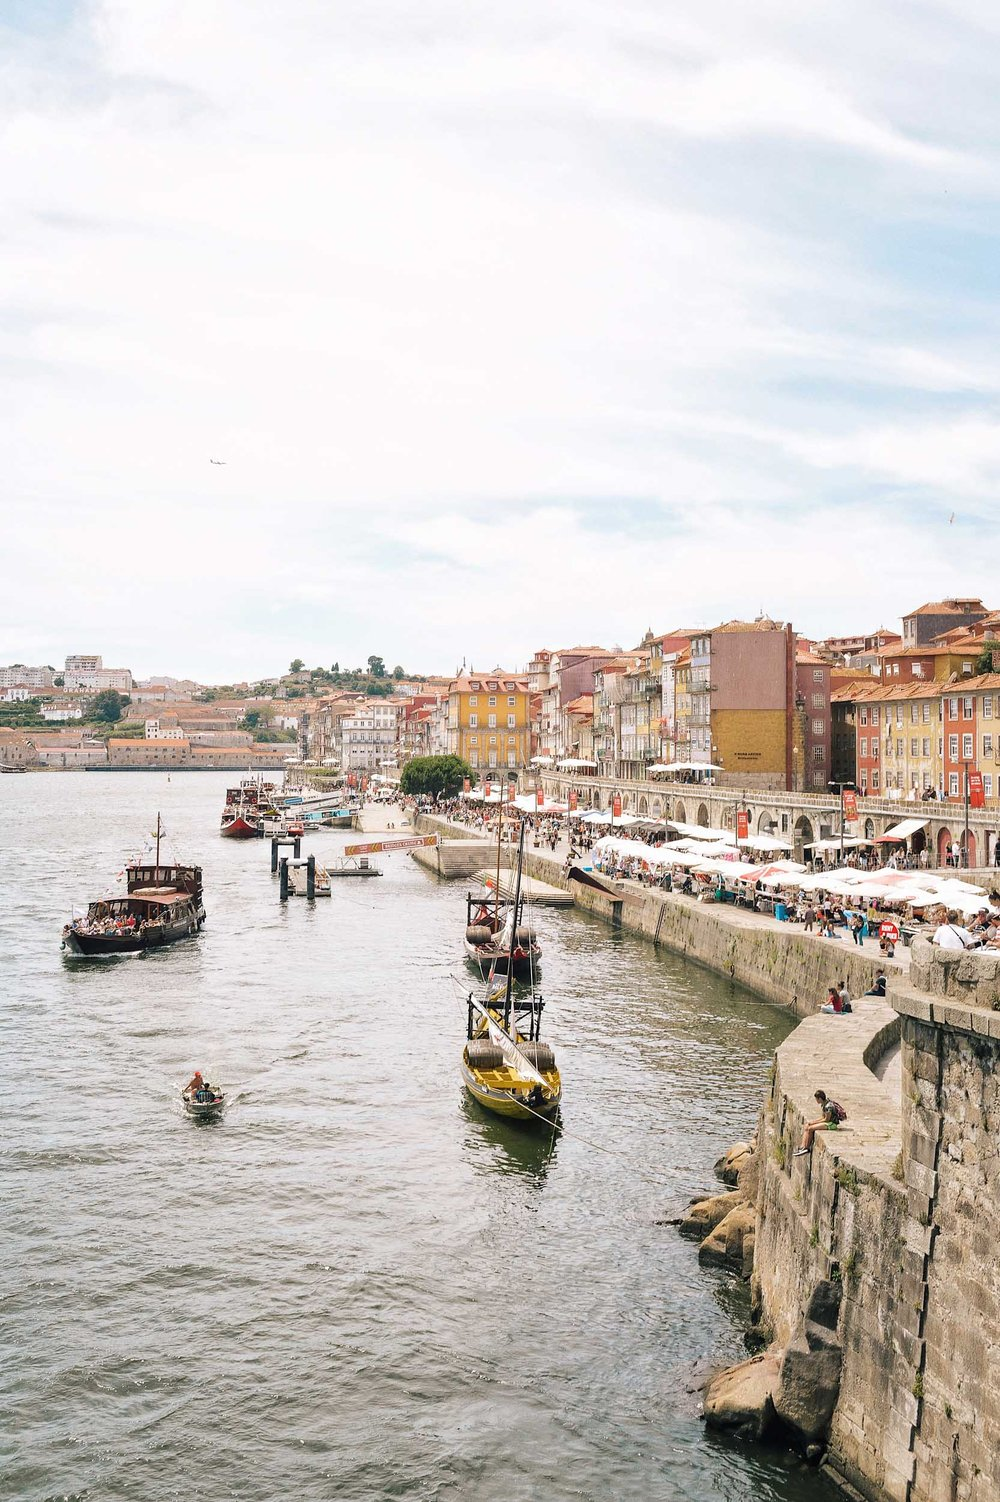 The Lisbon to Porto train is a convenient and easy way to get between the two cities